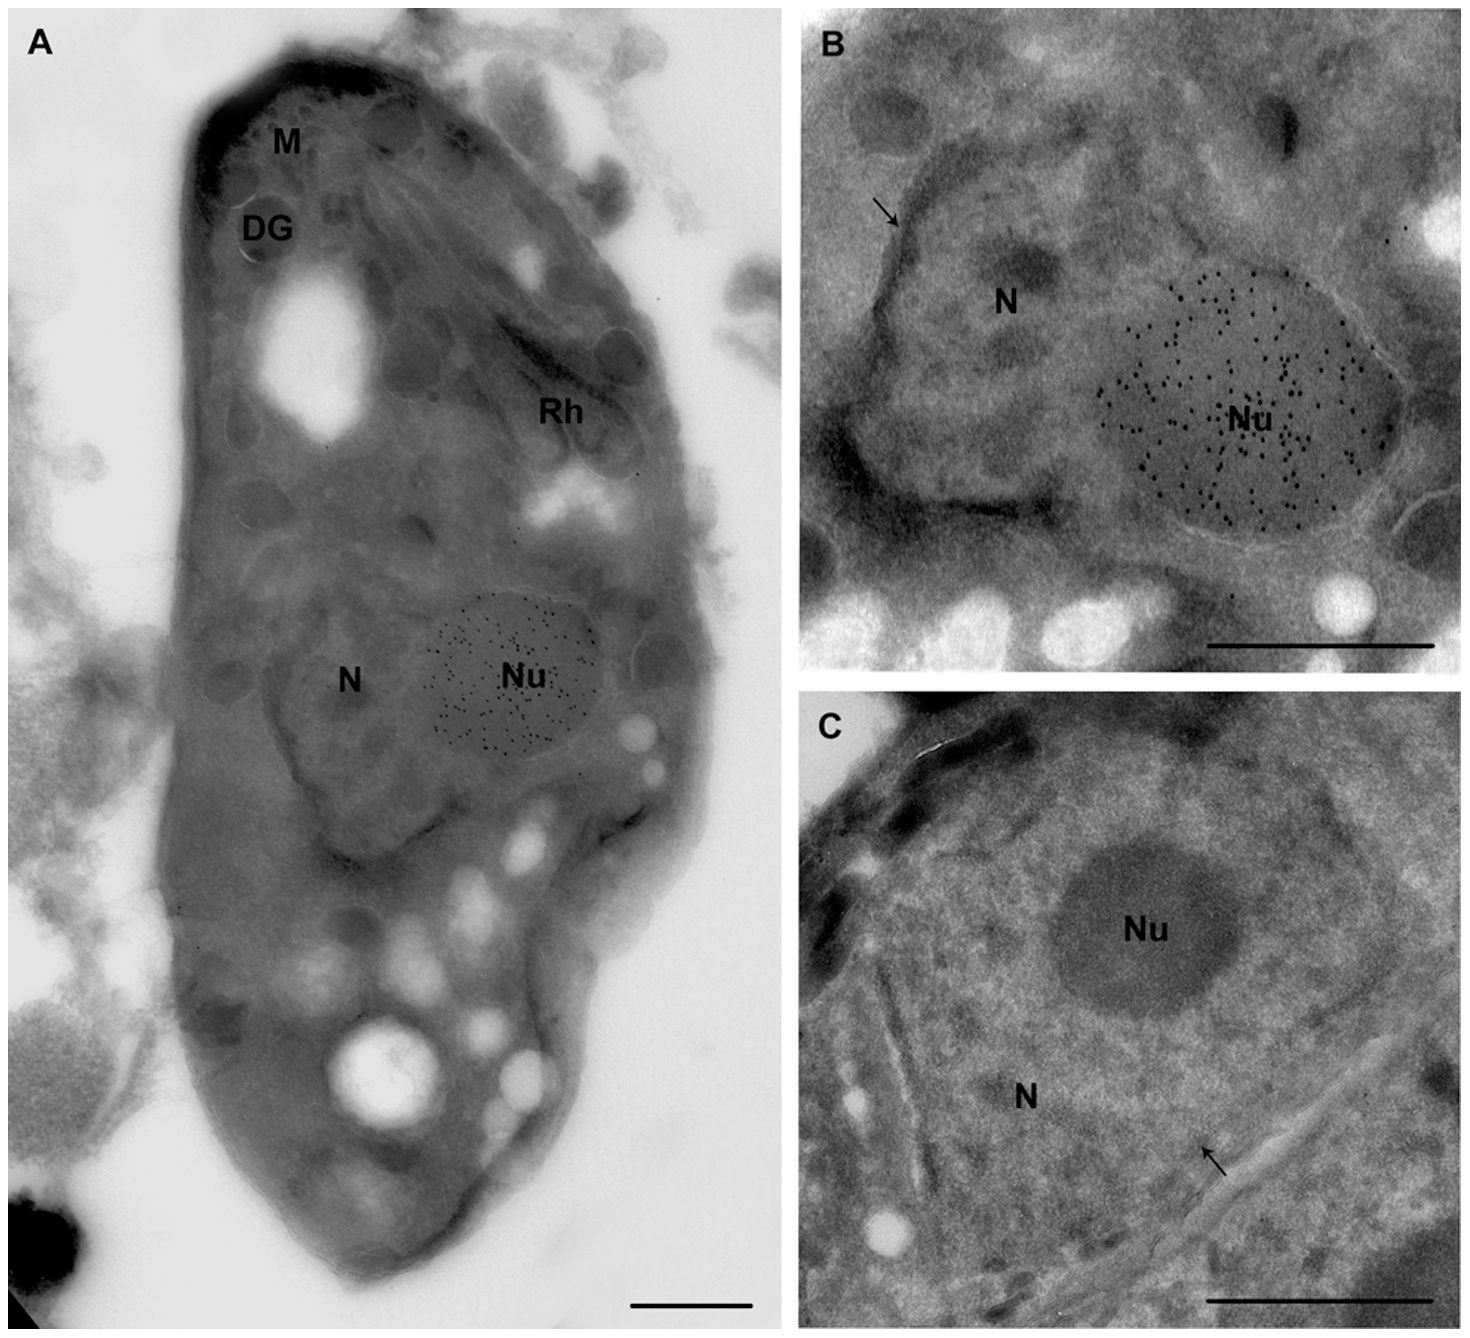 Ultrastructural analyses show that ectopic expression of TgNF3-YFP enhanced considerably nucleolar size.